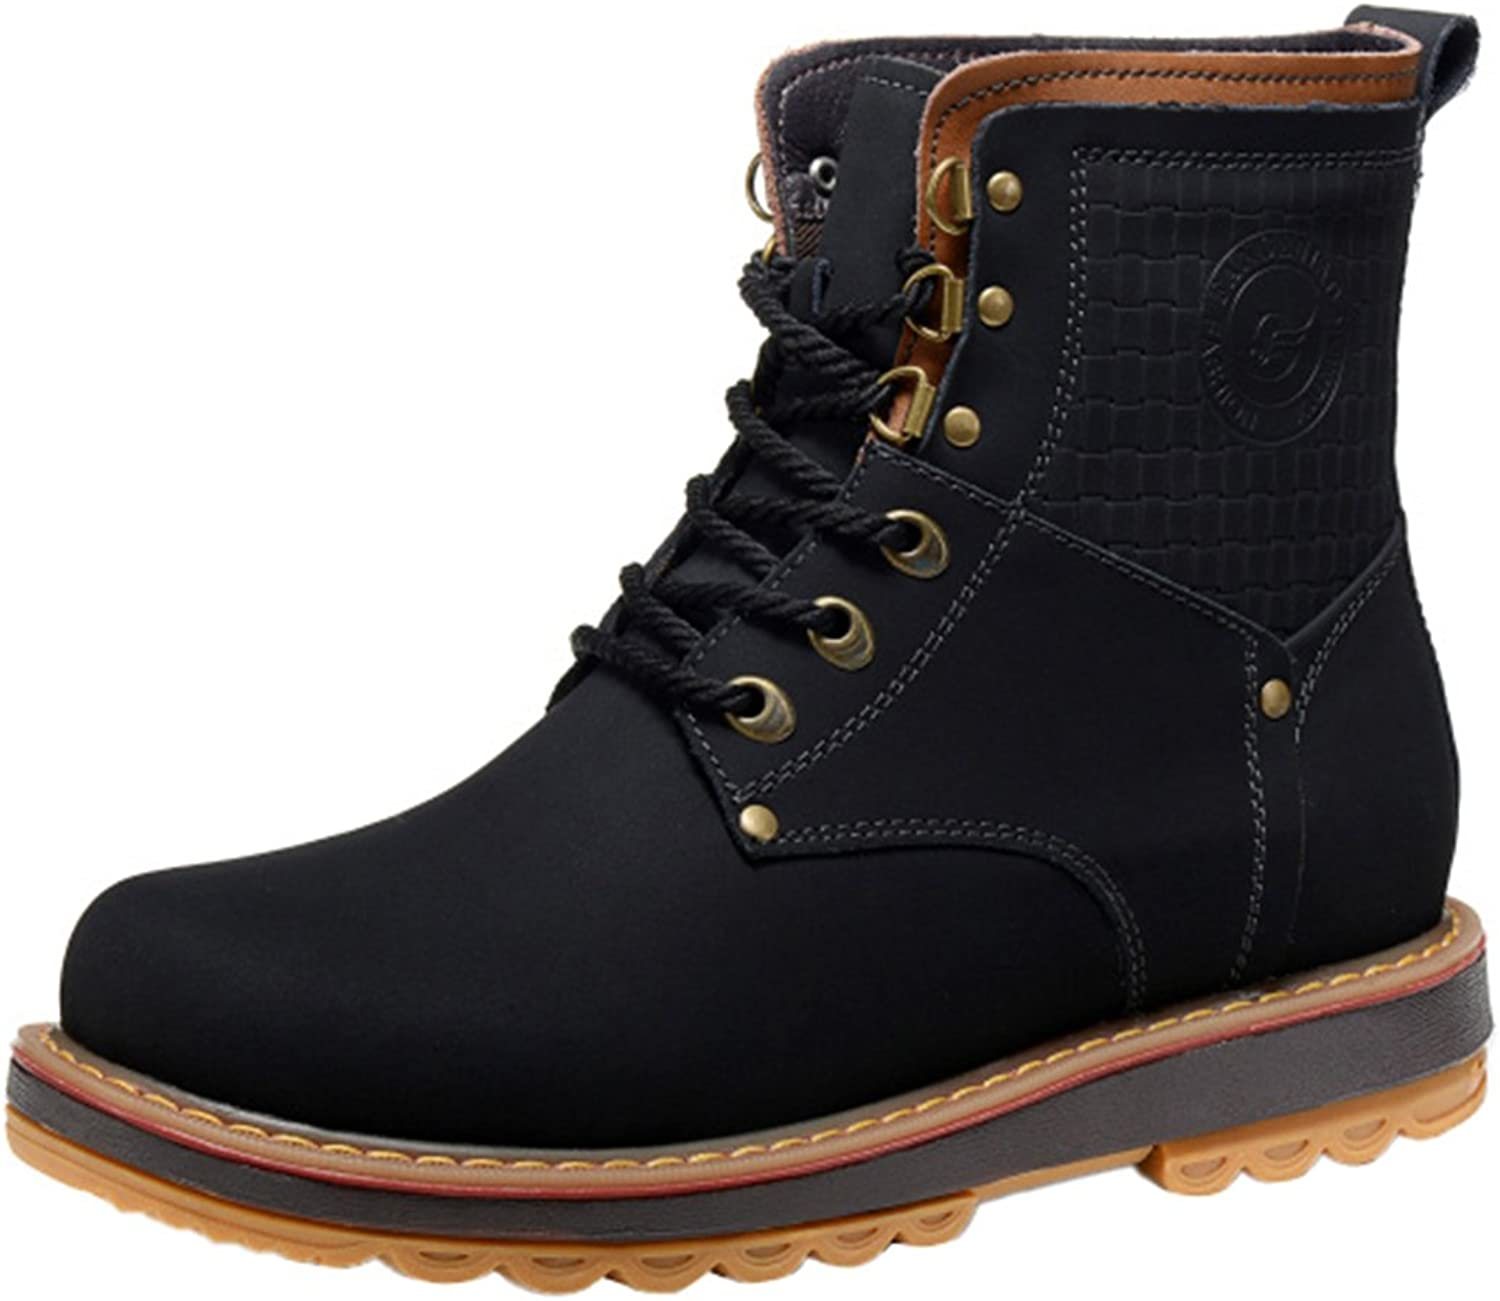 Work & Safety Boots Men's Boots Humor Mens Ankle Boot Genuine Leather Spring Autumn Casual Safety Boots Outdoor Male Steel Toe Cap Work Shoe Footwear Walking Shoes